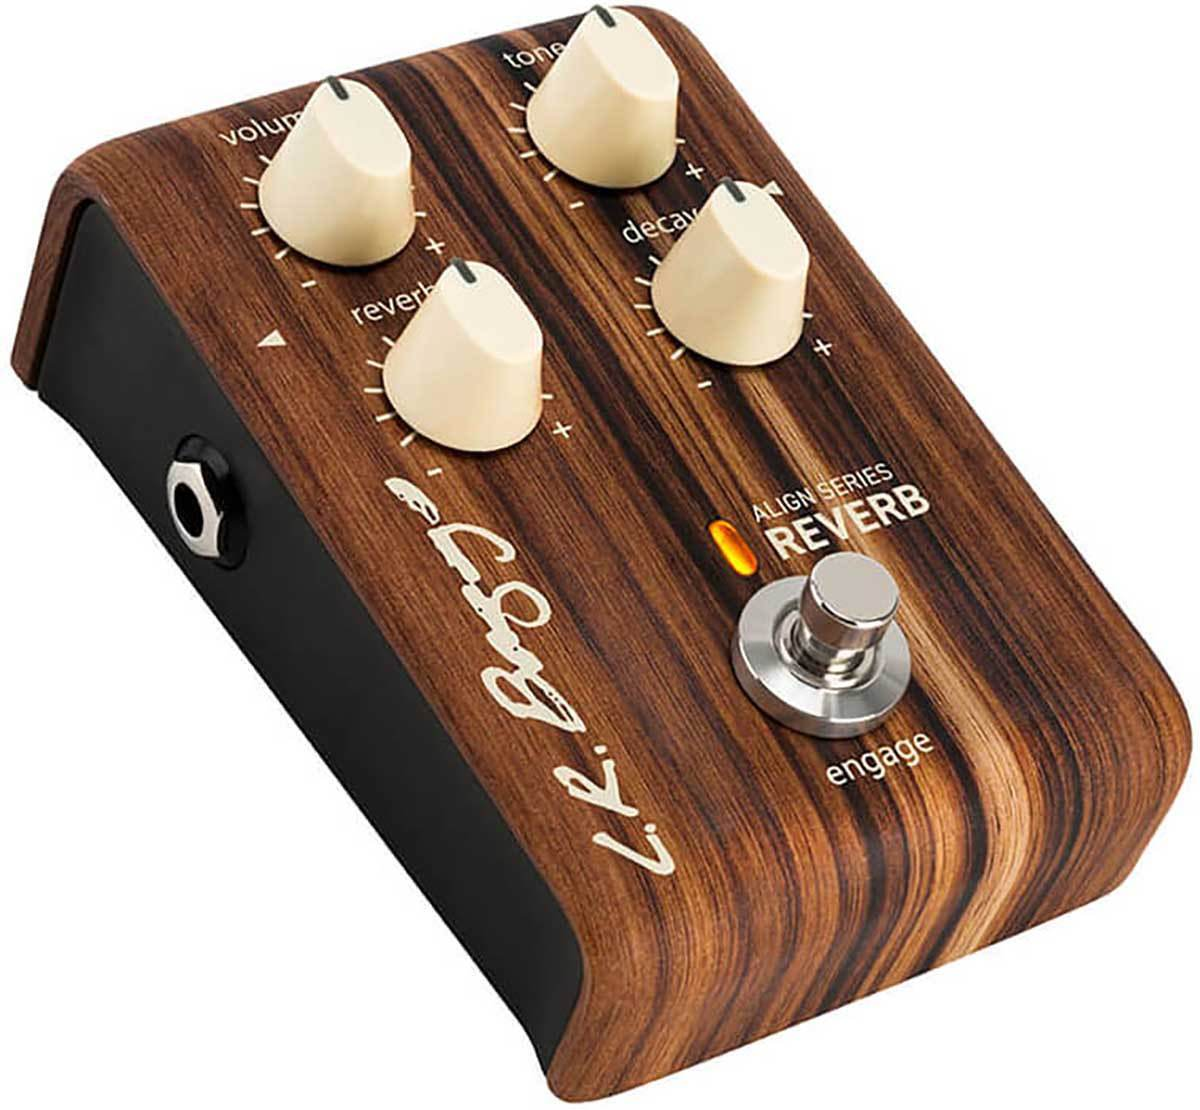 LR Baggs Align Series REVERB Acoustic Pedal with Decay, Volume, Tone, True Bypas